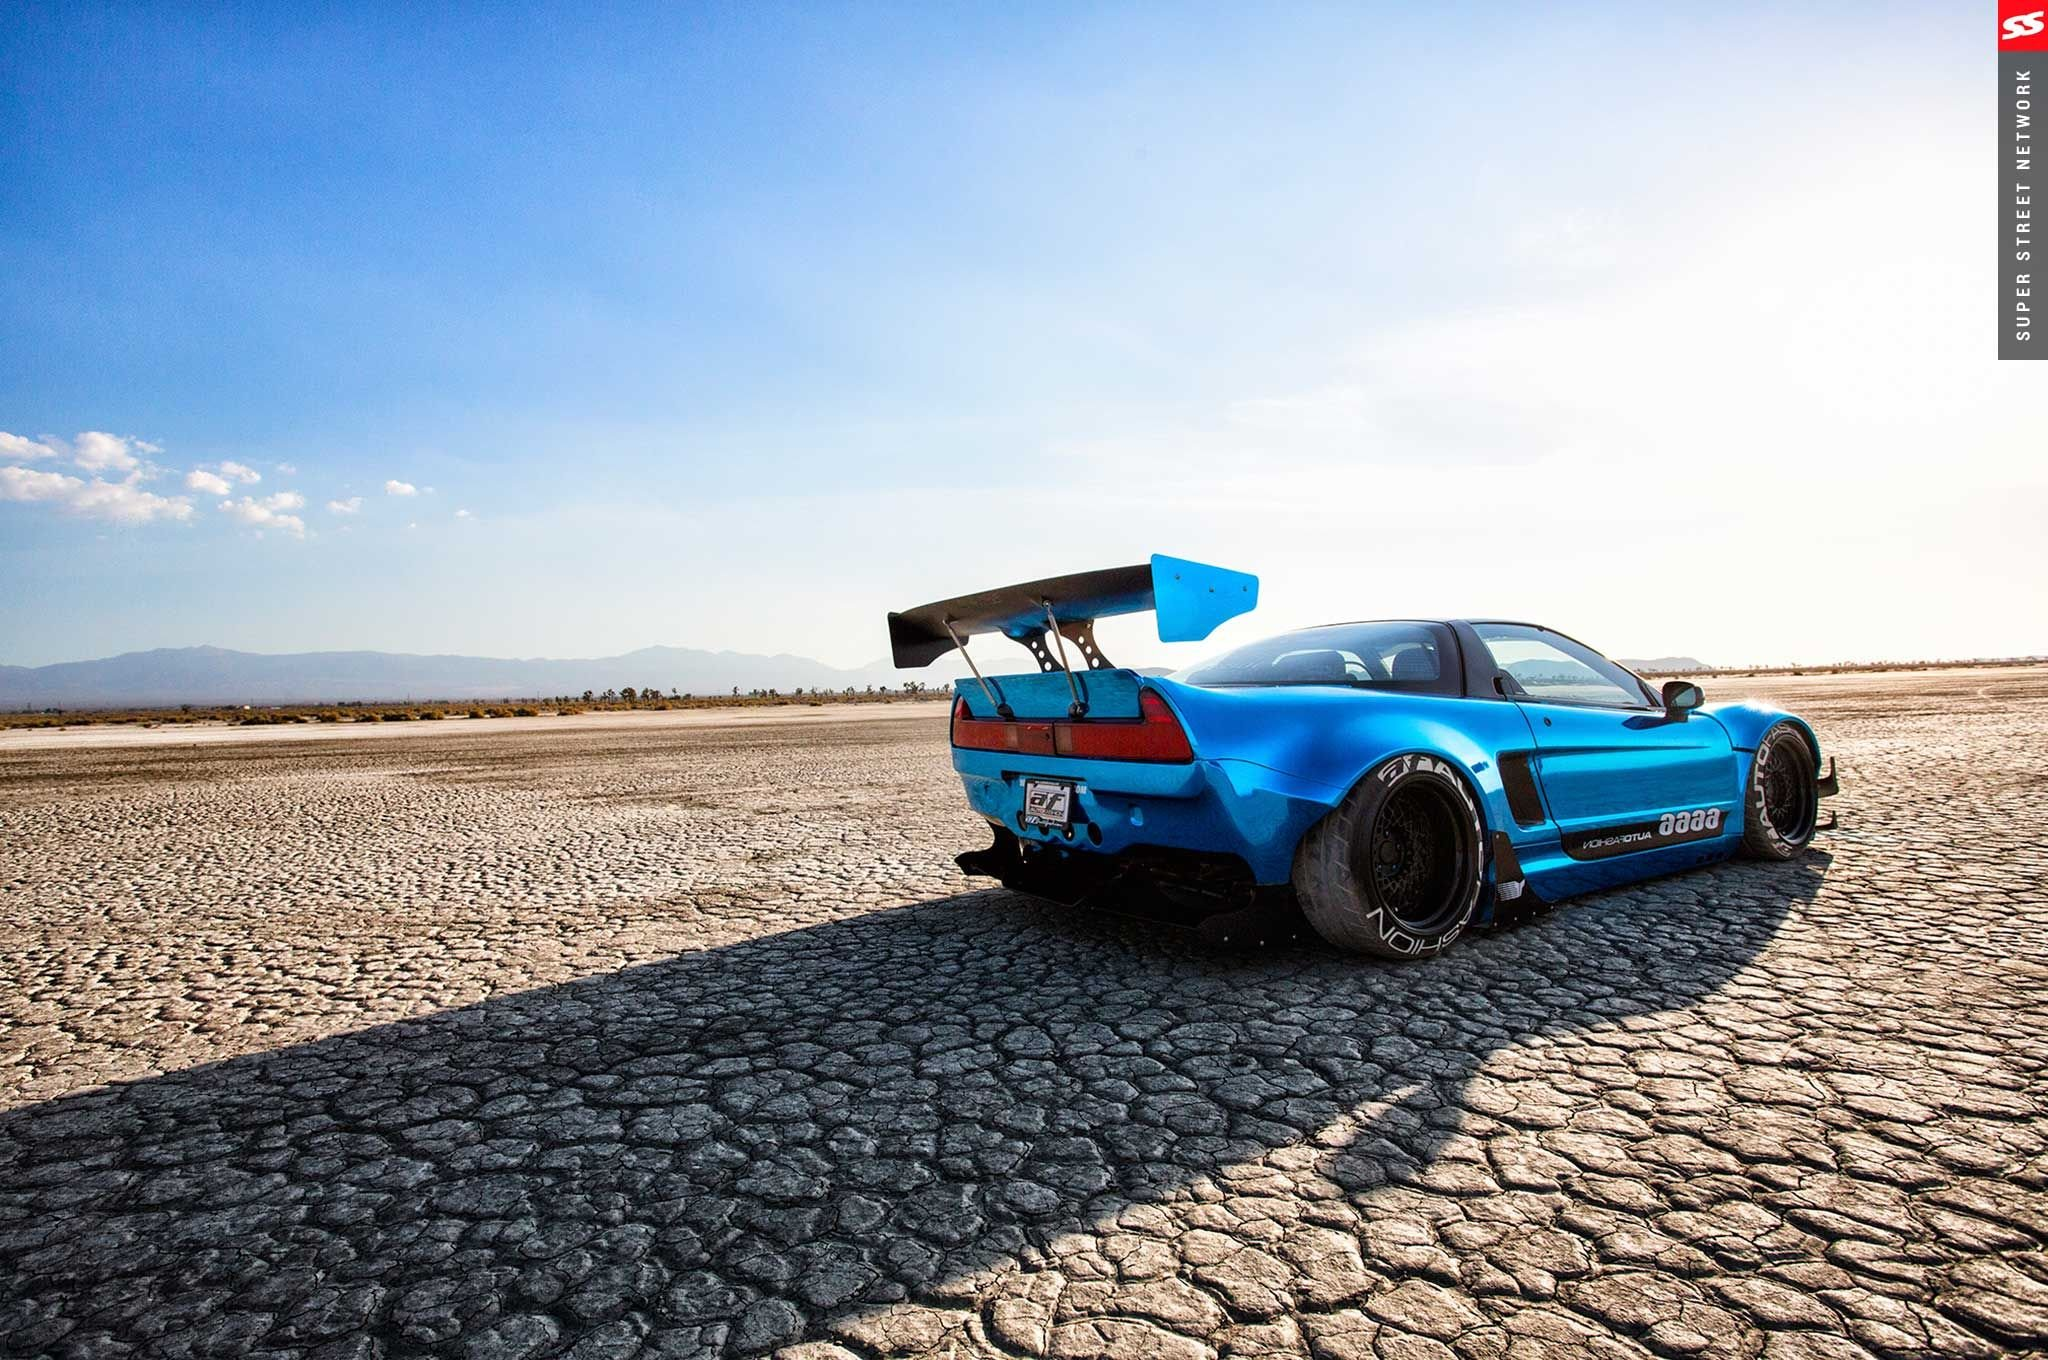 1992 acura nsx rocket bunny cars coupe modified blue wallpaper | 2048x1360 | 855630 | WallpaperUP